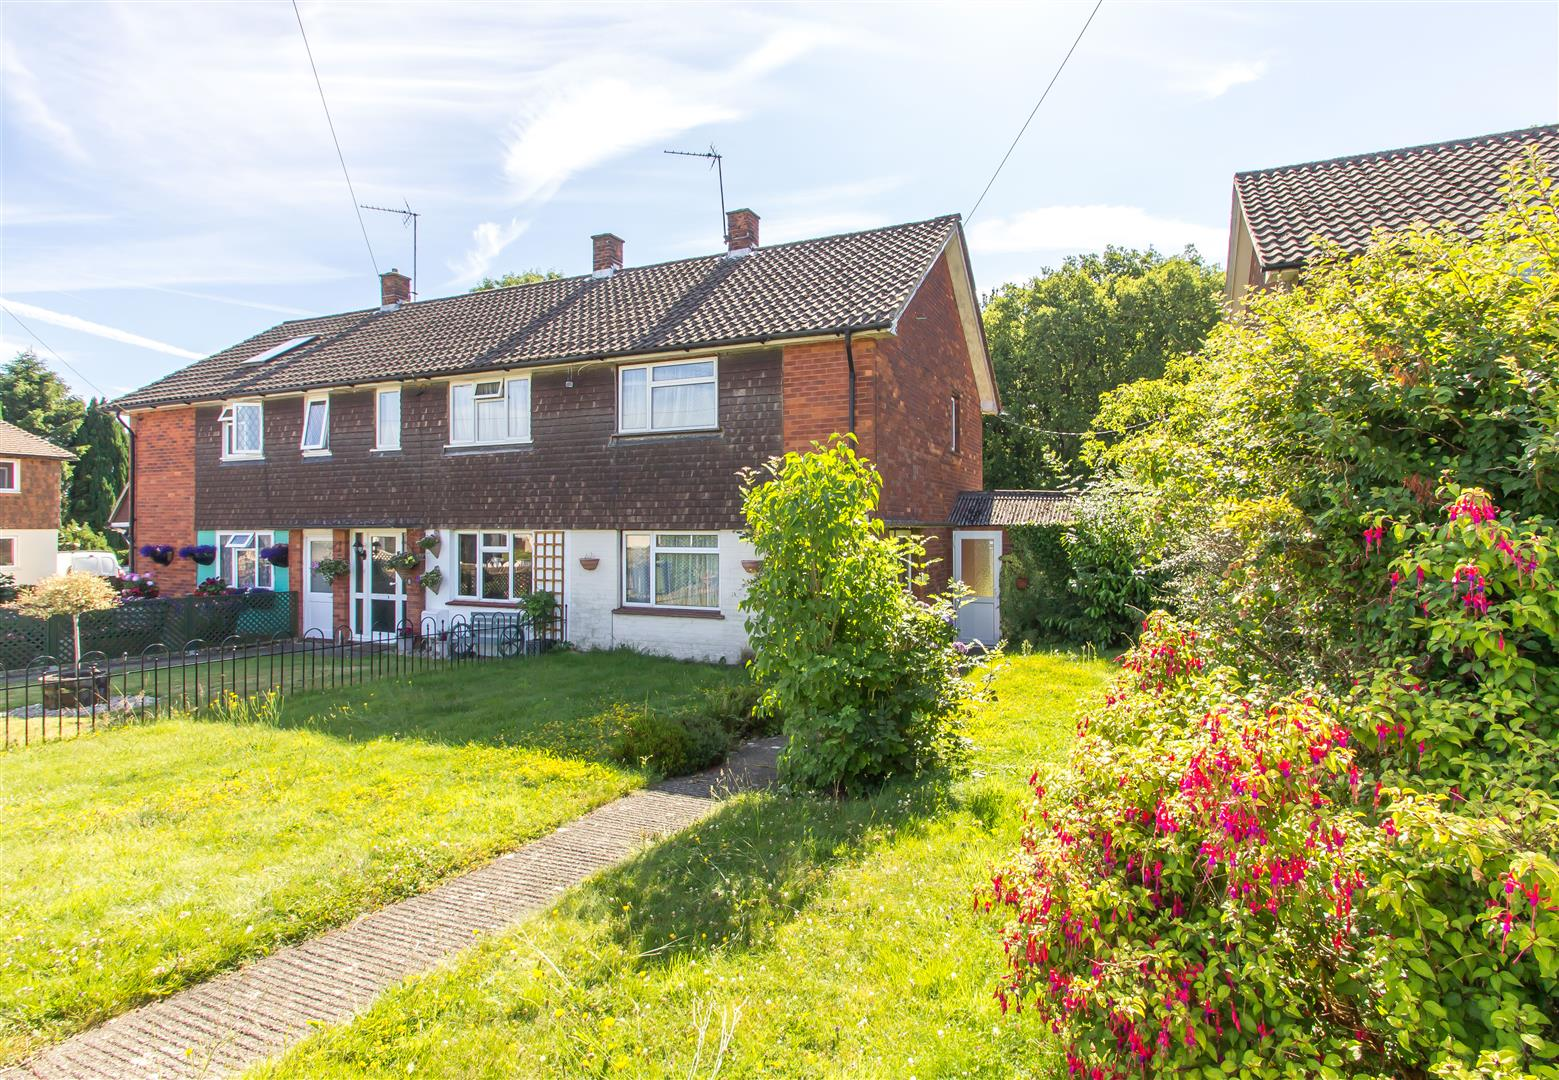 2 Bedrooms Semi Detached House for sale in The Square, Paynesfield Road, Tatsfield